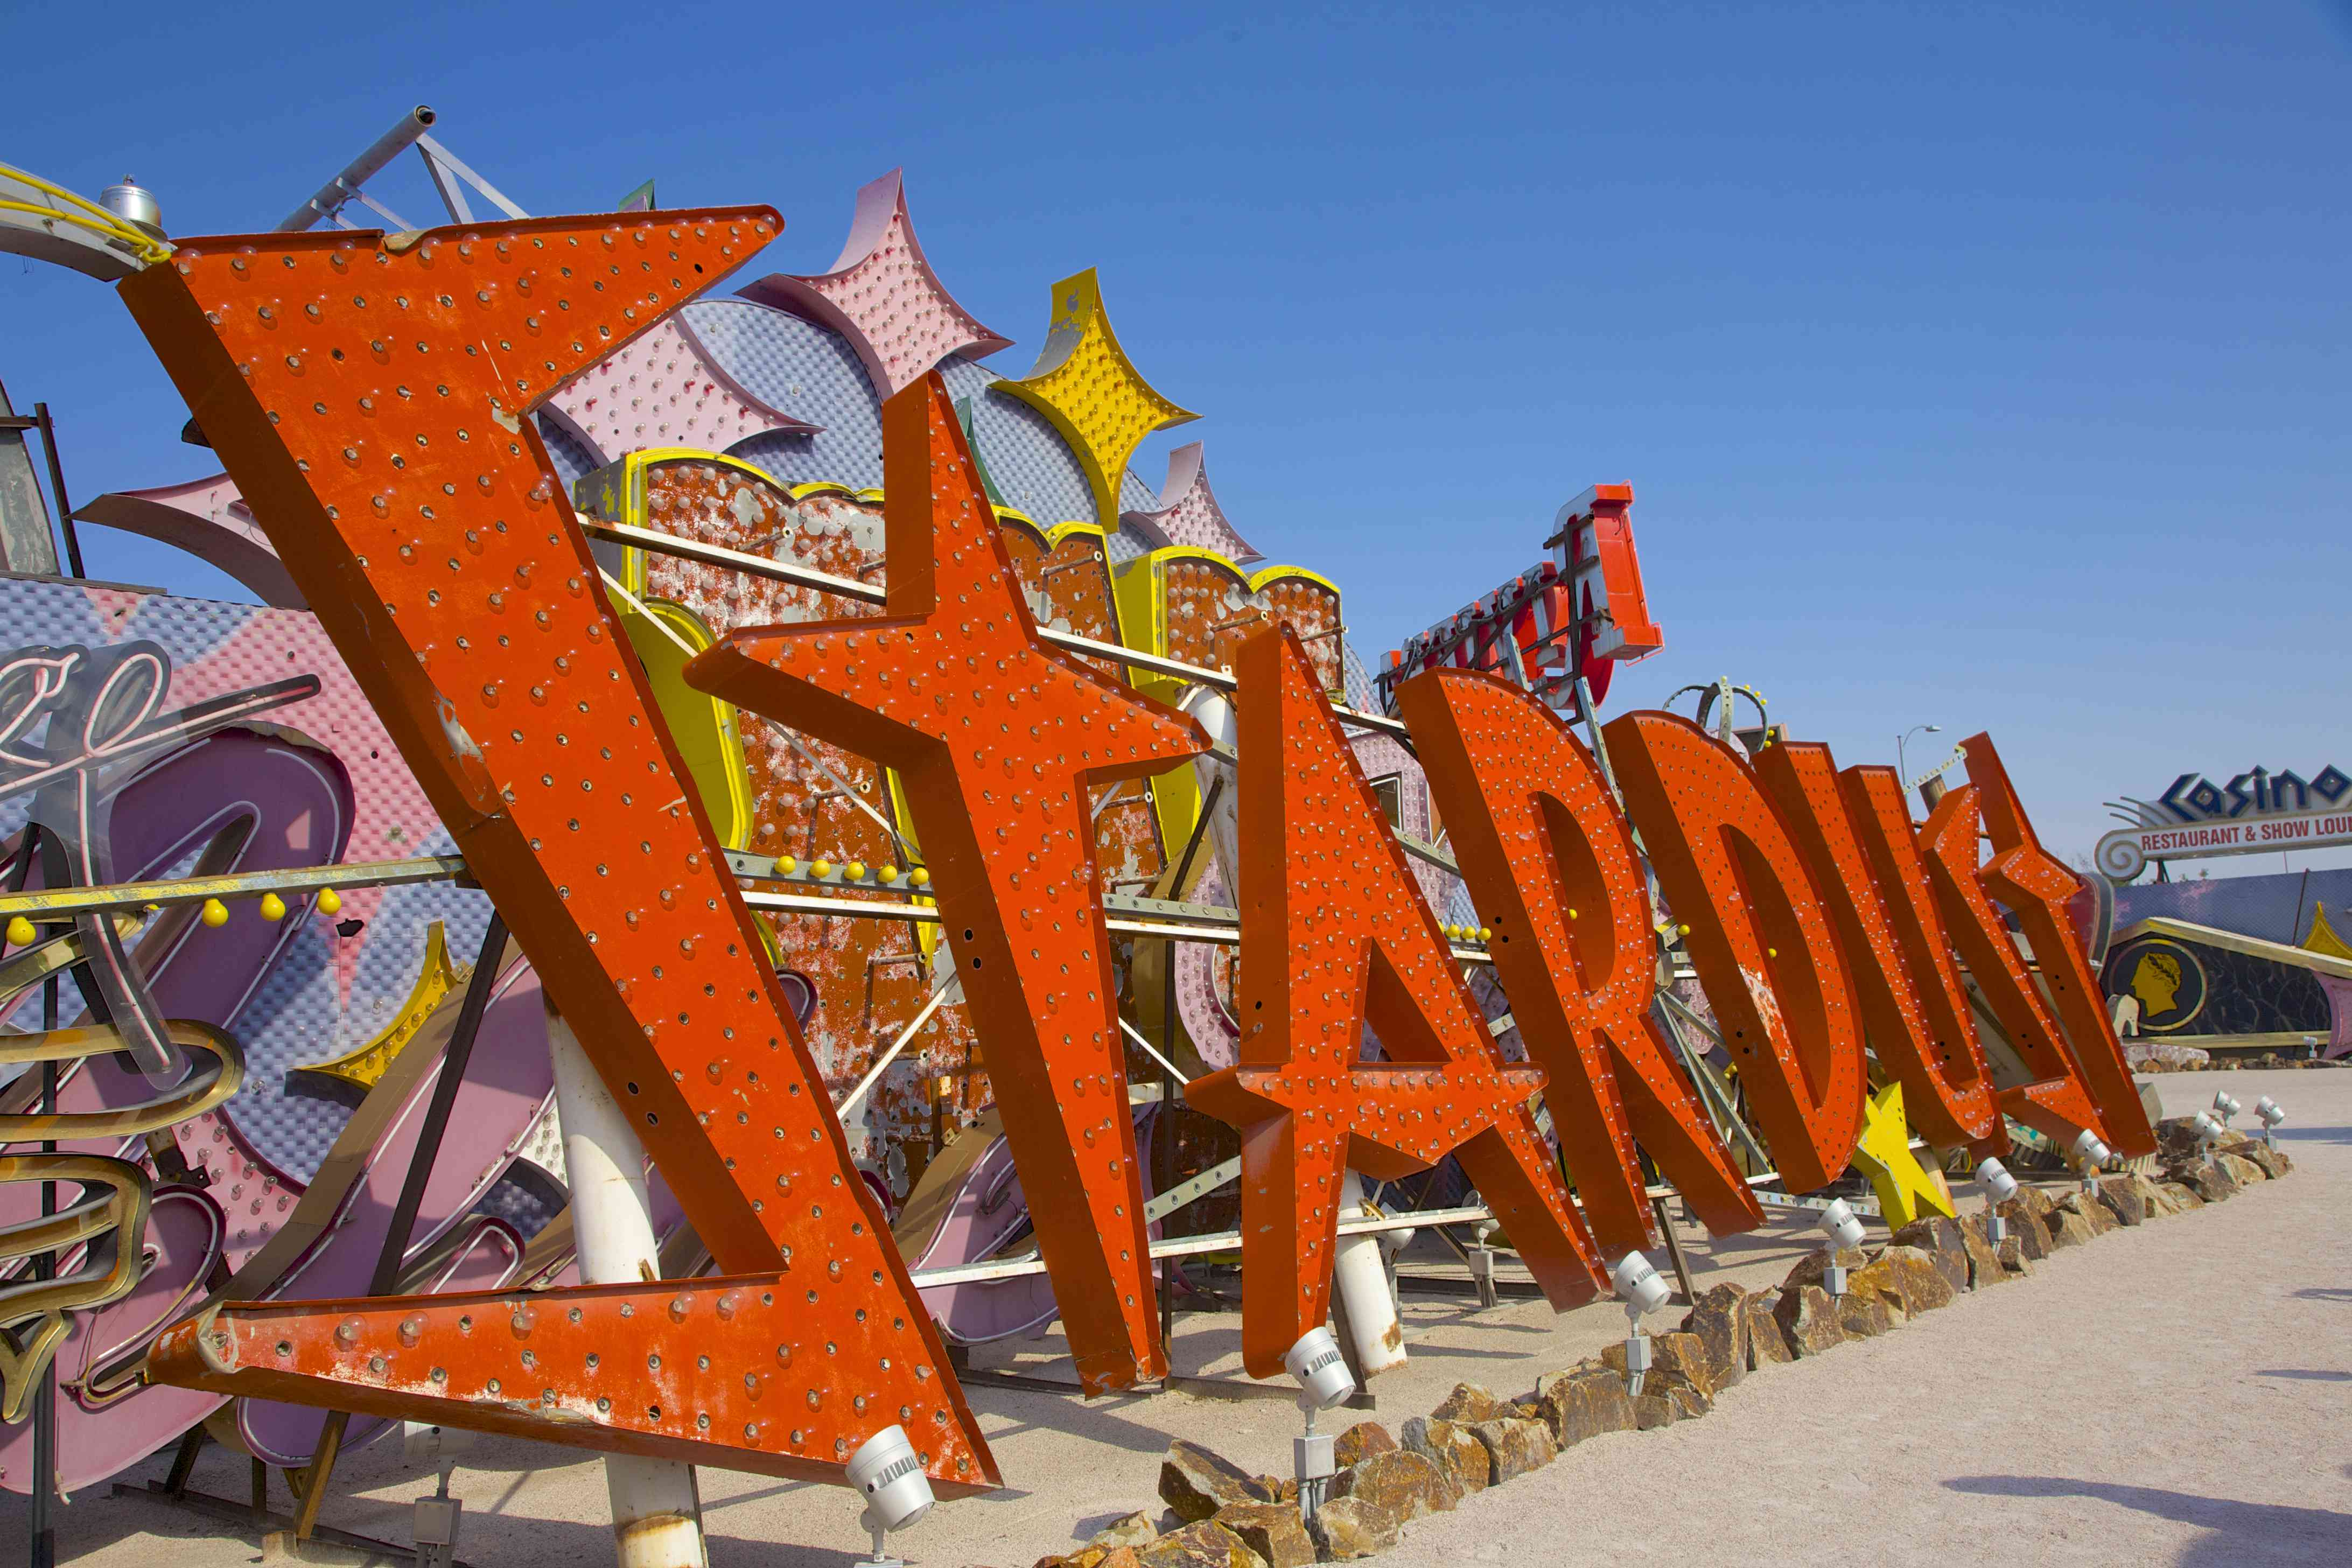 Sign from the Stardust Hotel, now at Neon Museum, Las Vegas